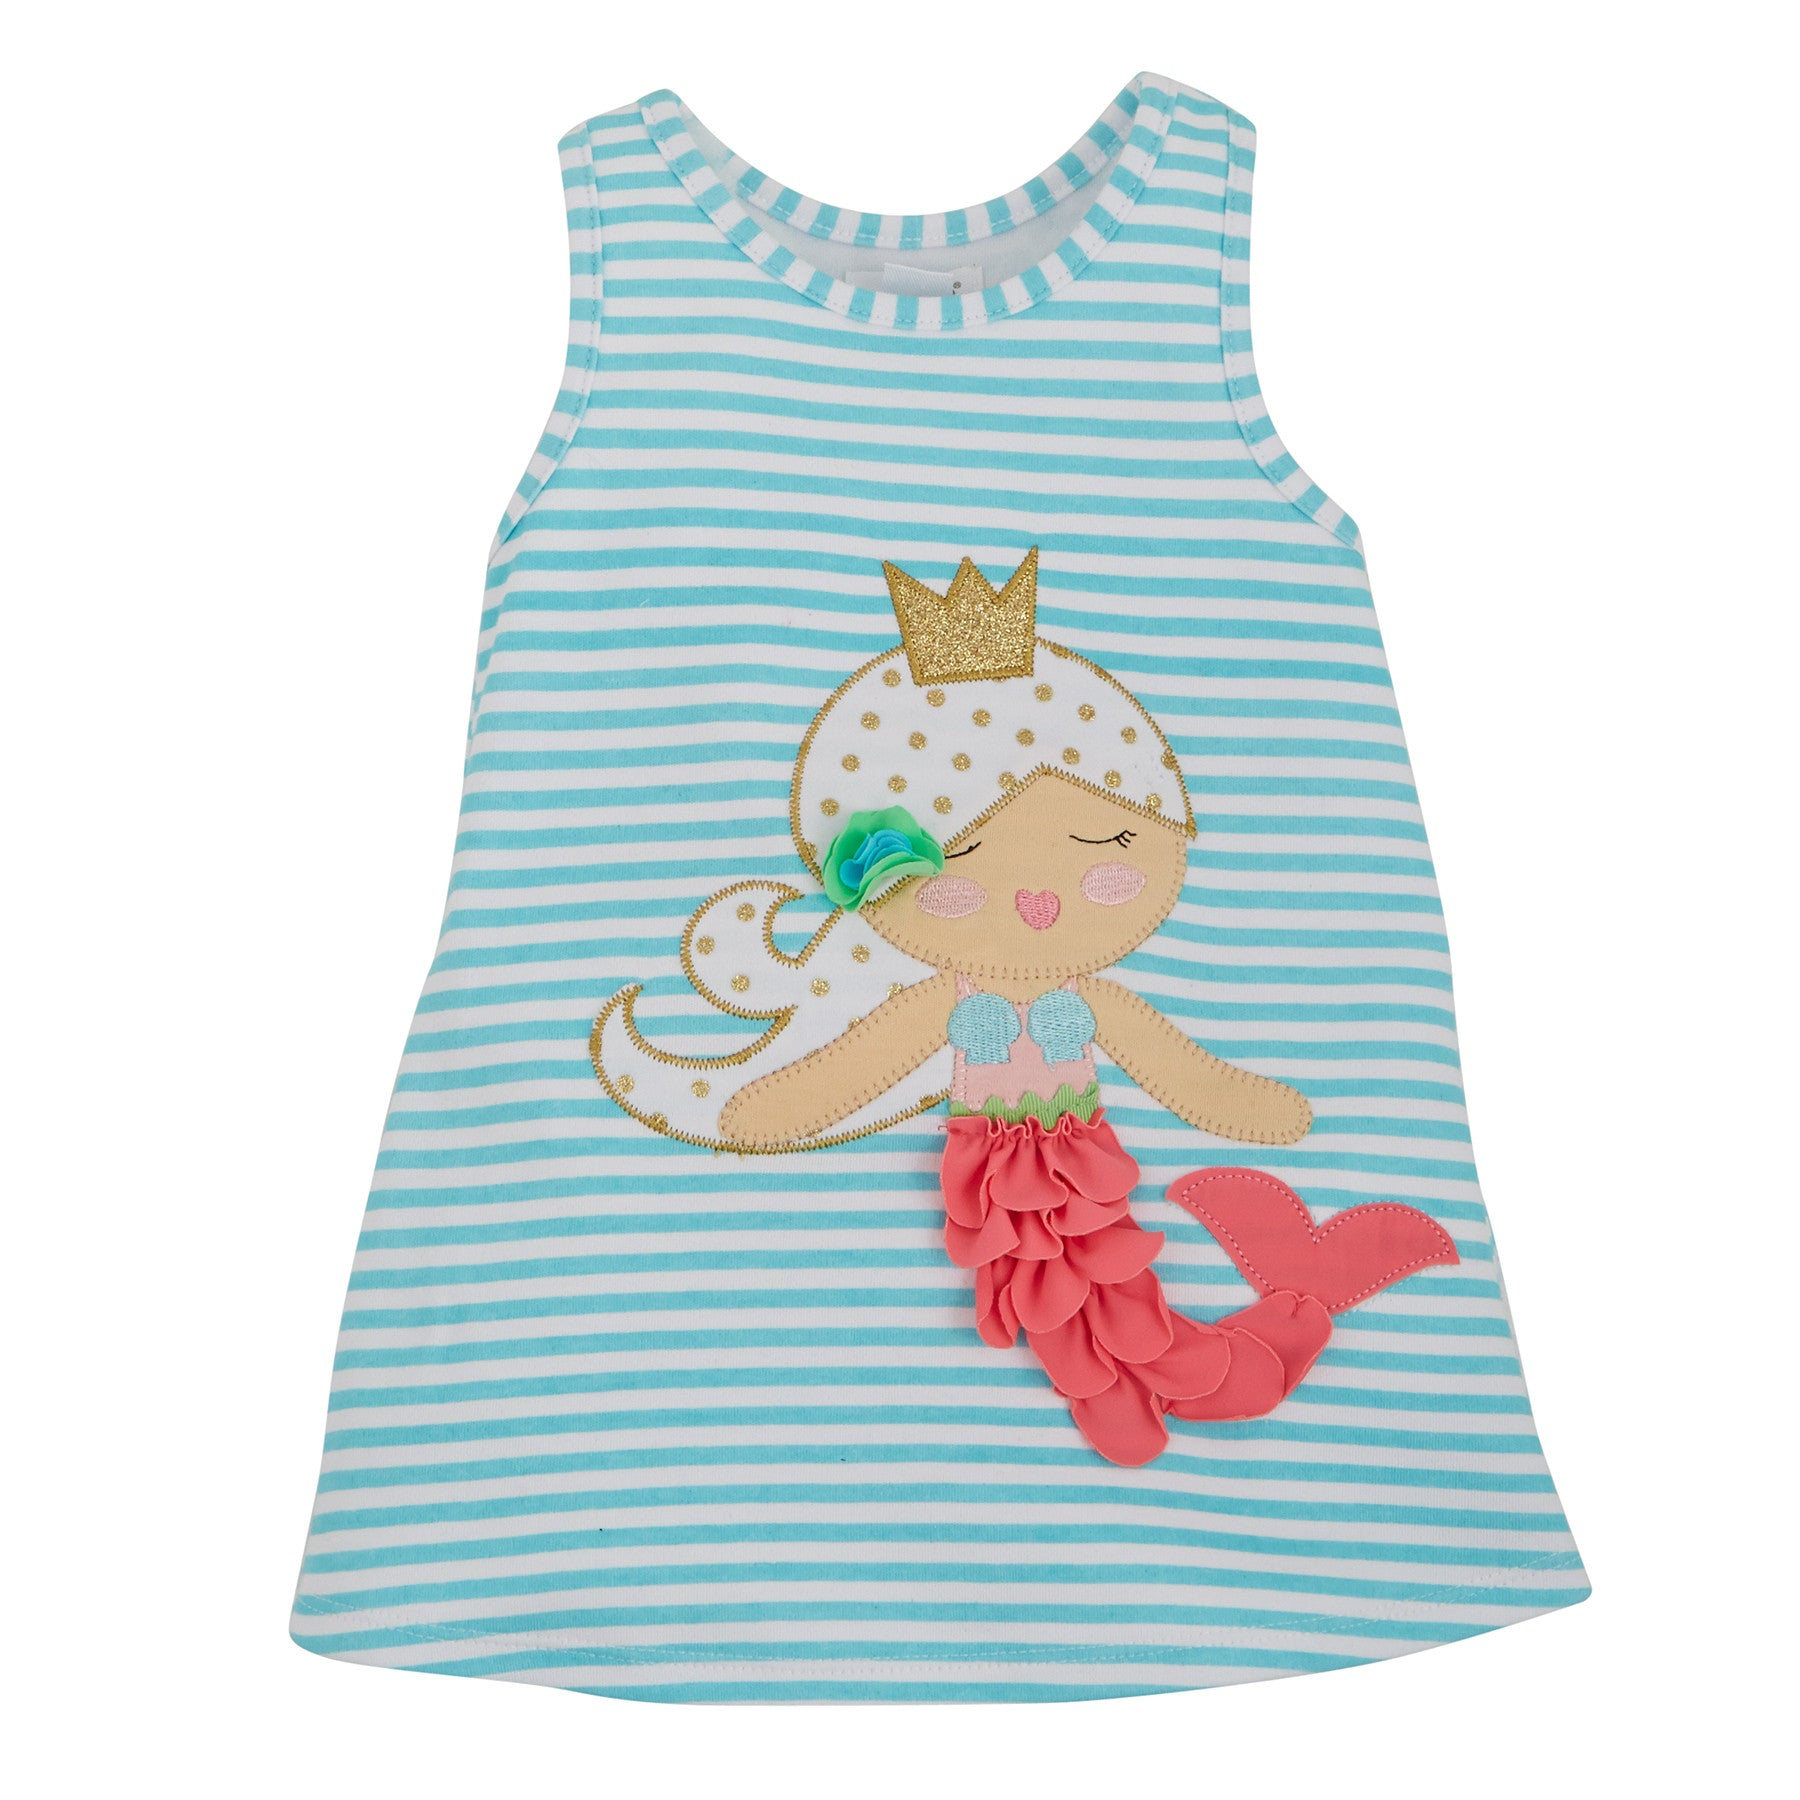 Mermaid Dress for Mermaid Birthday Party- Pixie Dust Party Spot